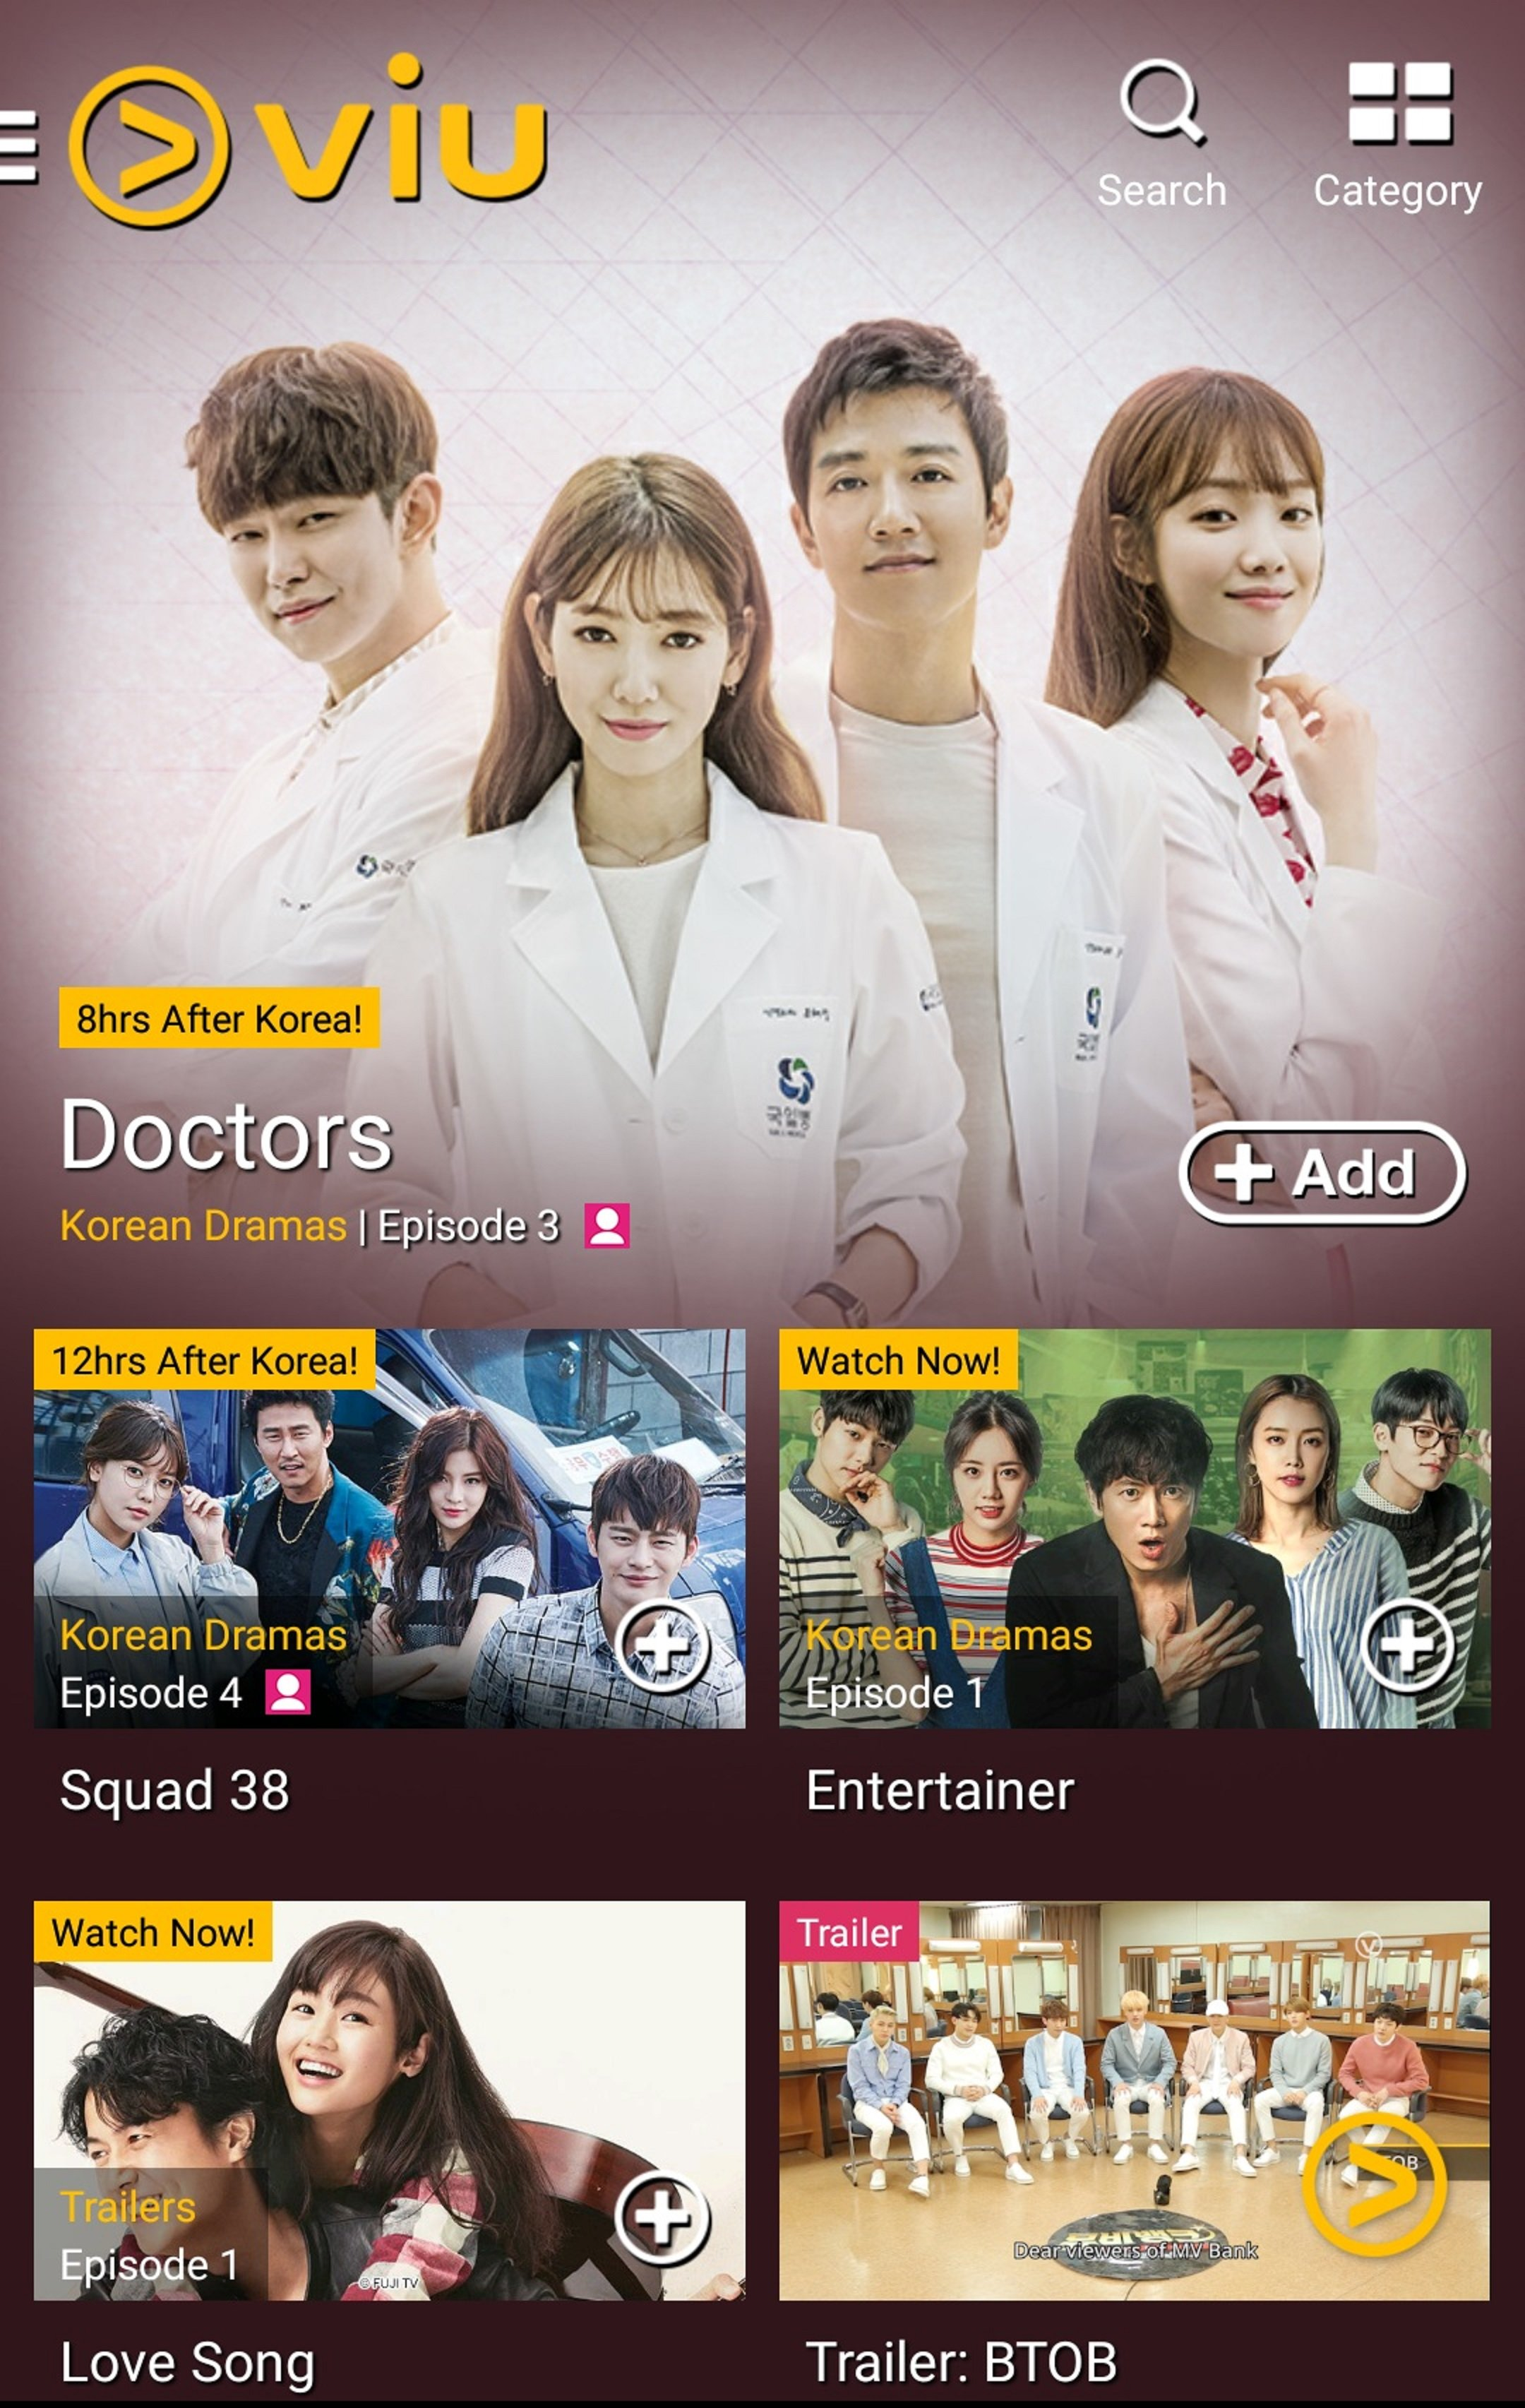 NEWS] Viu goes premium with better features and exclusive privileges